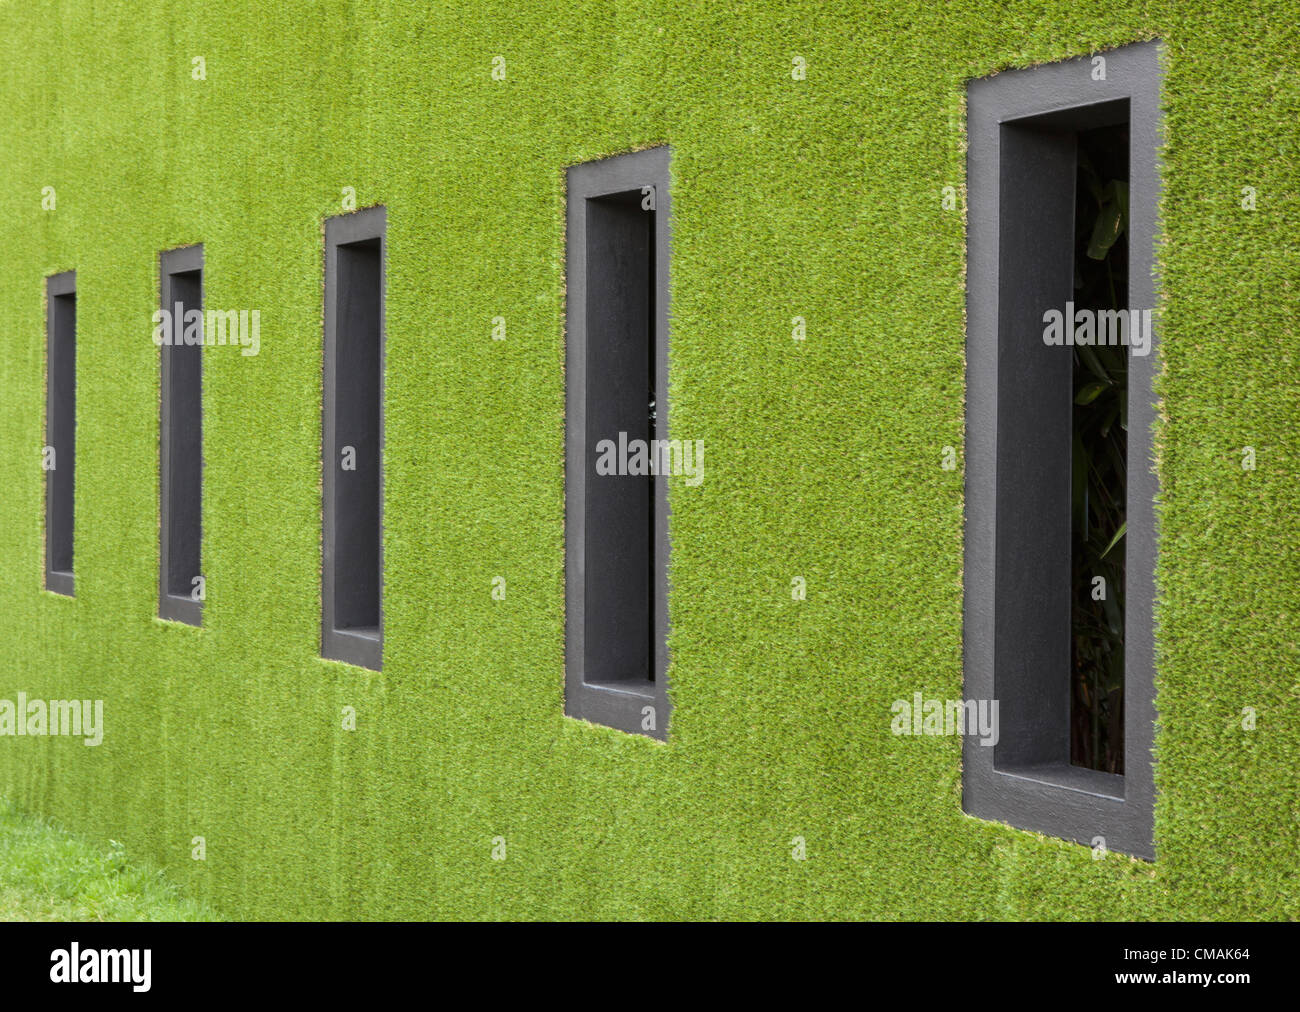 Hampton Court,UK. Wednesday 4th July 2012 'Possession' is a grass covered exhibit by designer Tony Smith - Stock Image